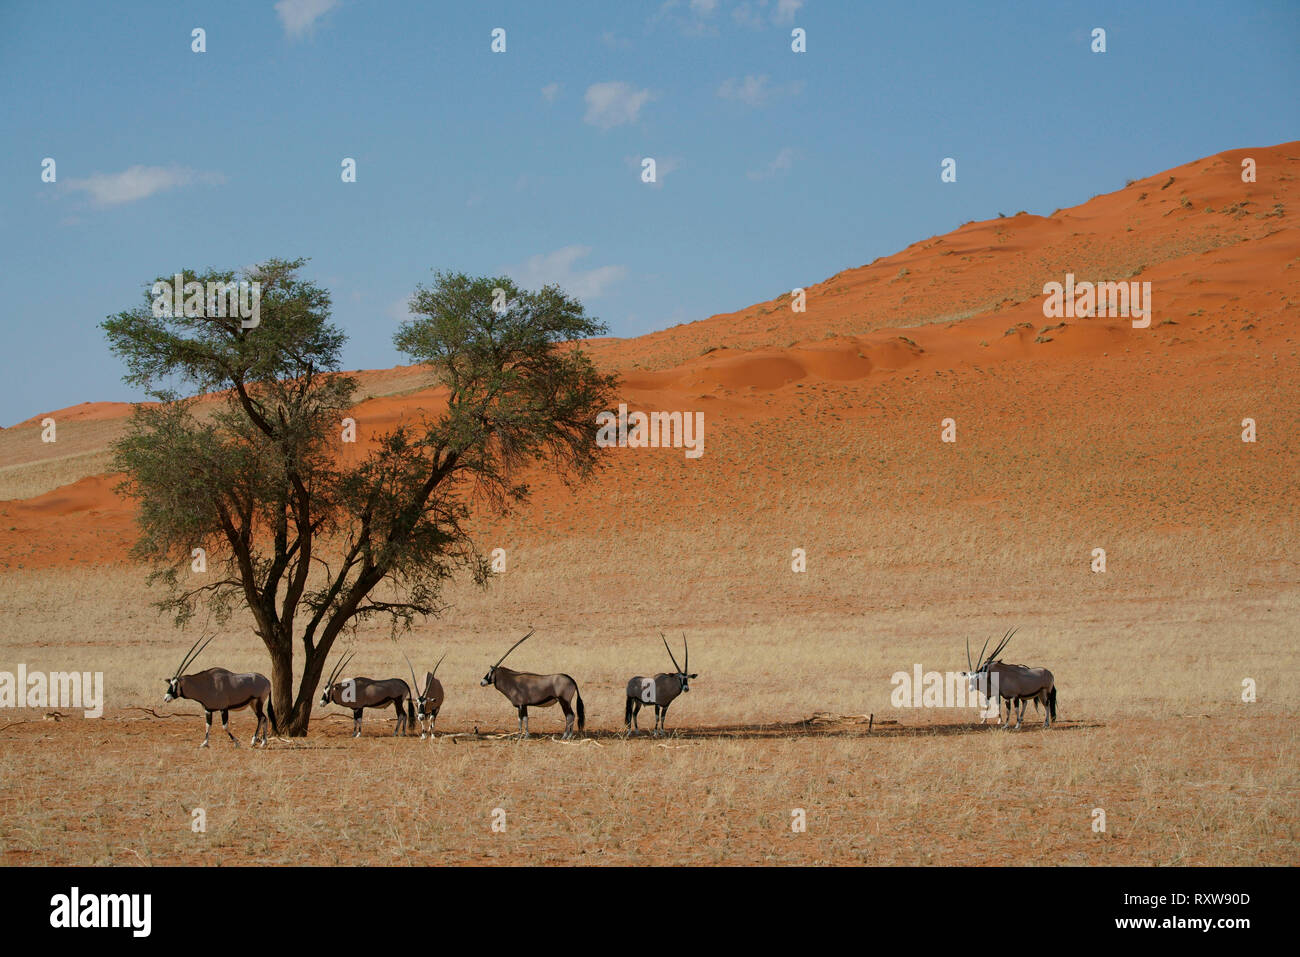 Oryx,Gemsbok,Oryx Gazella,a group of oryx staying cool under an Acacia tree at noon,in the Namib Rand Nature Reserve,western Namibia,Africa. The oryx has evolved physiological adaptations allowing it to go without water for months. - Stock Image